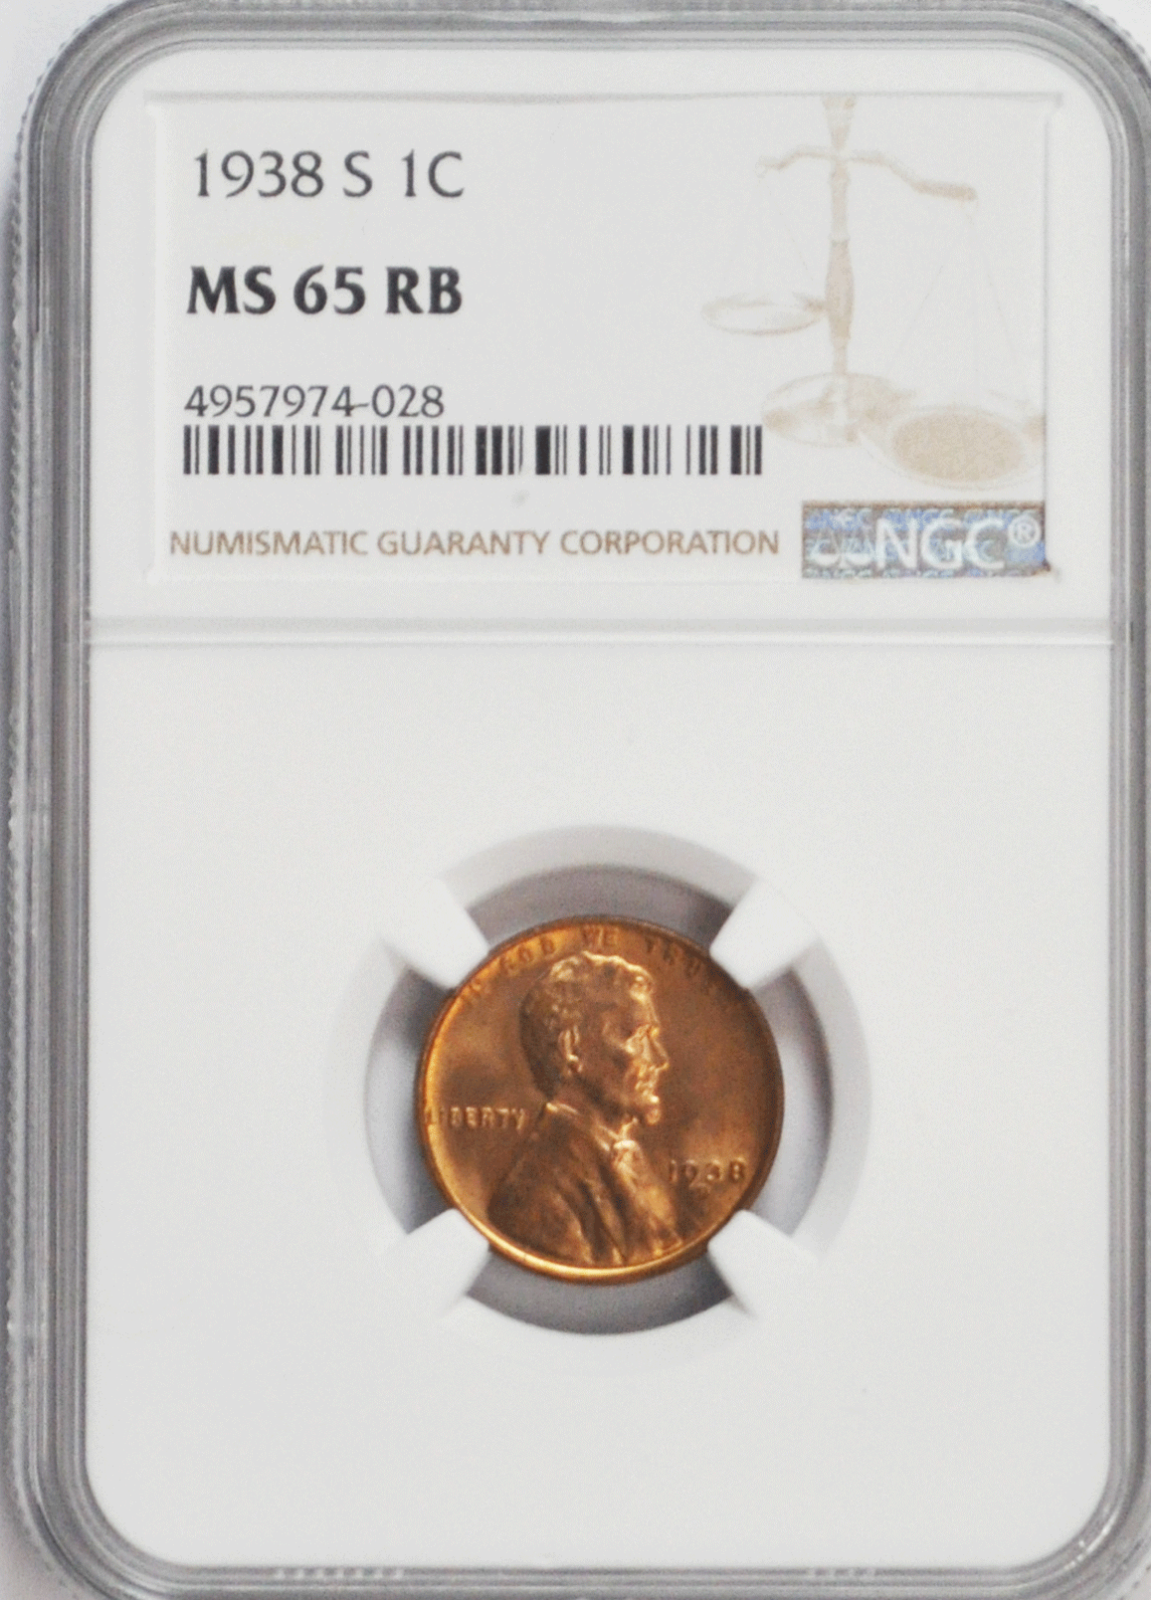 1938 S/S/S 1c Lincoln Wheat Cent NGC MS 65 RB Brilliant Uncirculated Coin FS-502